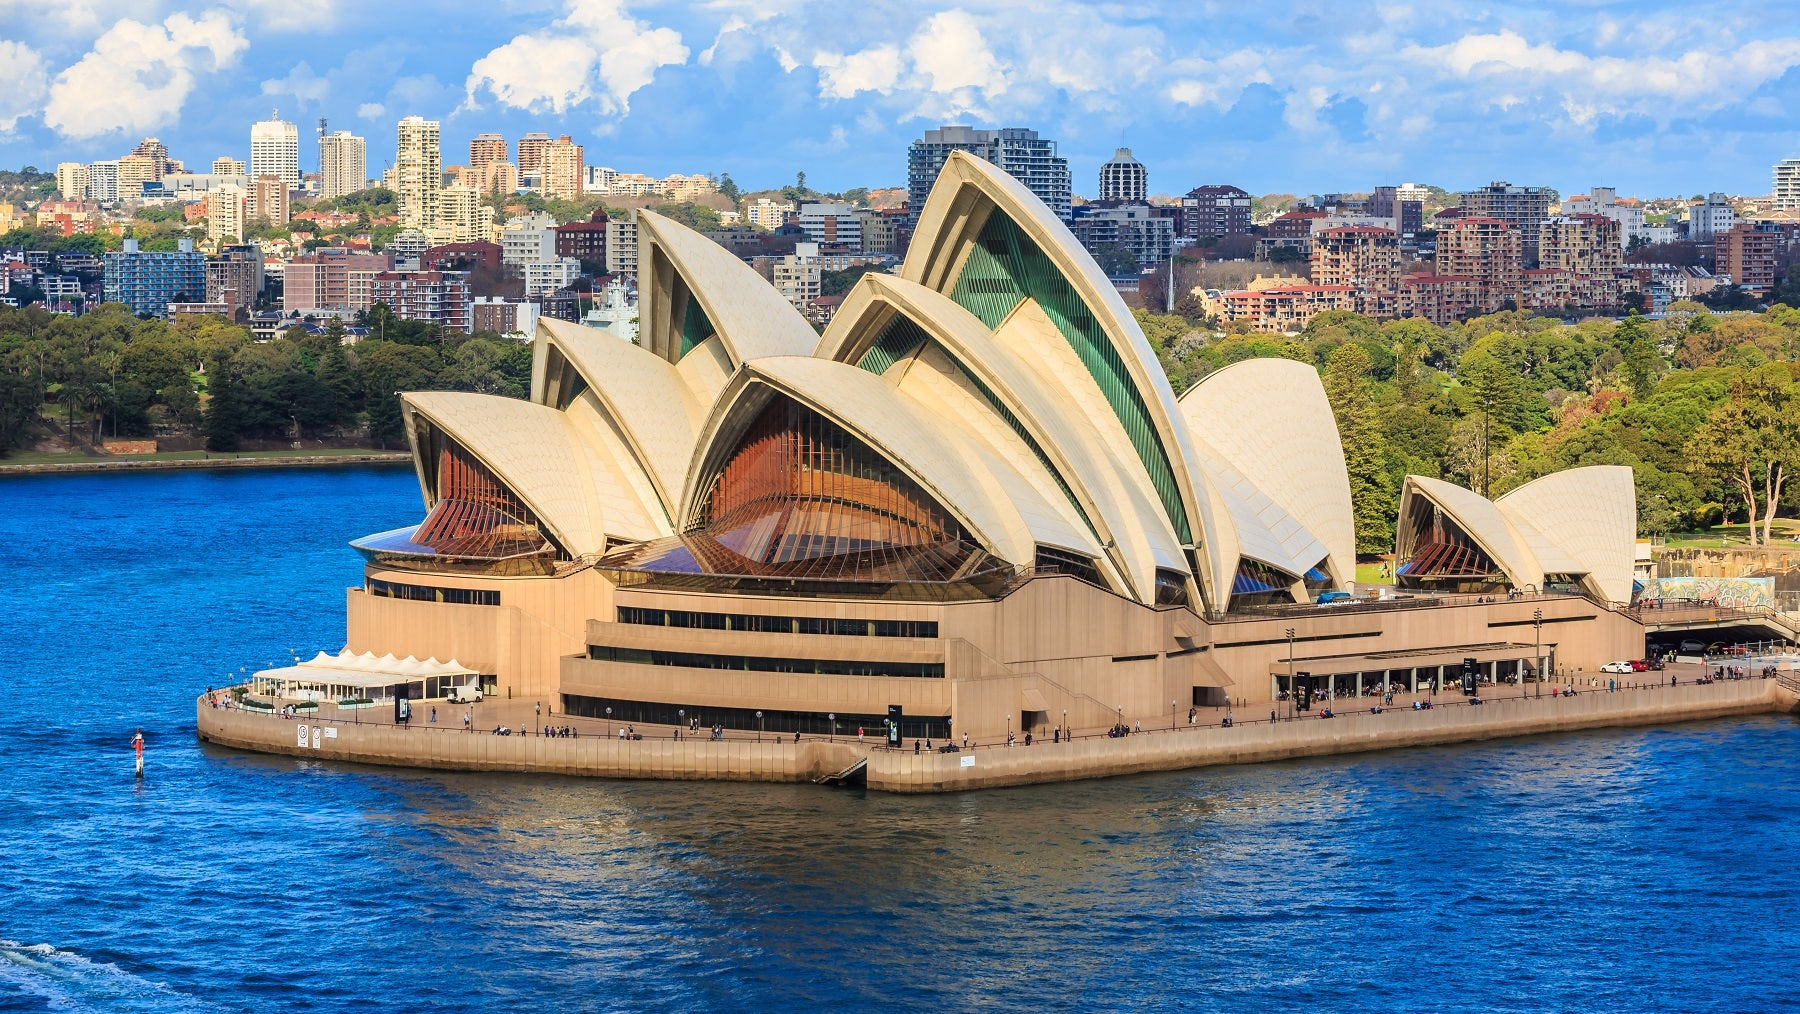 Sydney Opera House | Source: Shutterstock